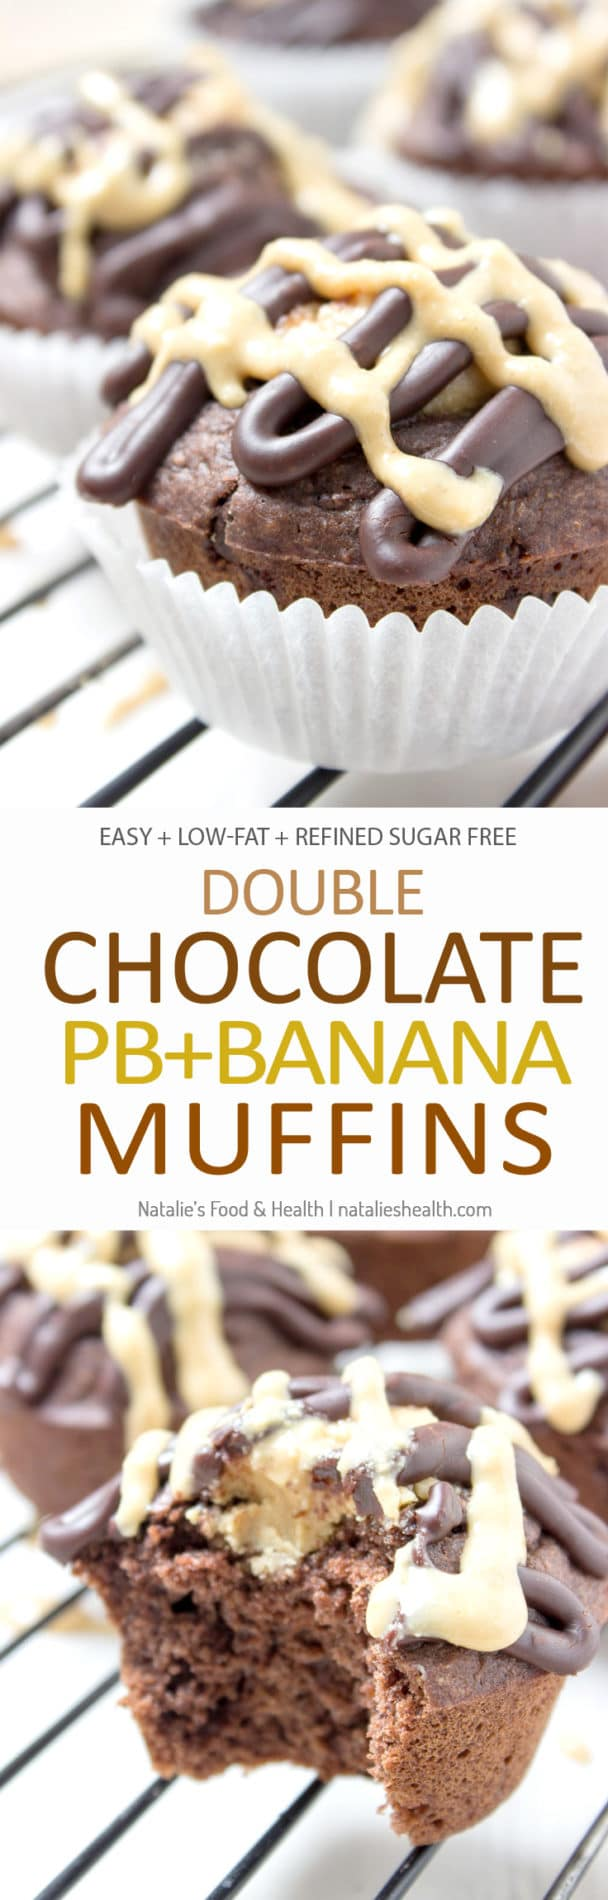 Double Chocolate Banana Muffins - Natalie's Food & Health